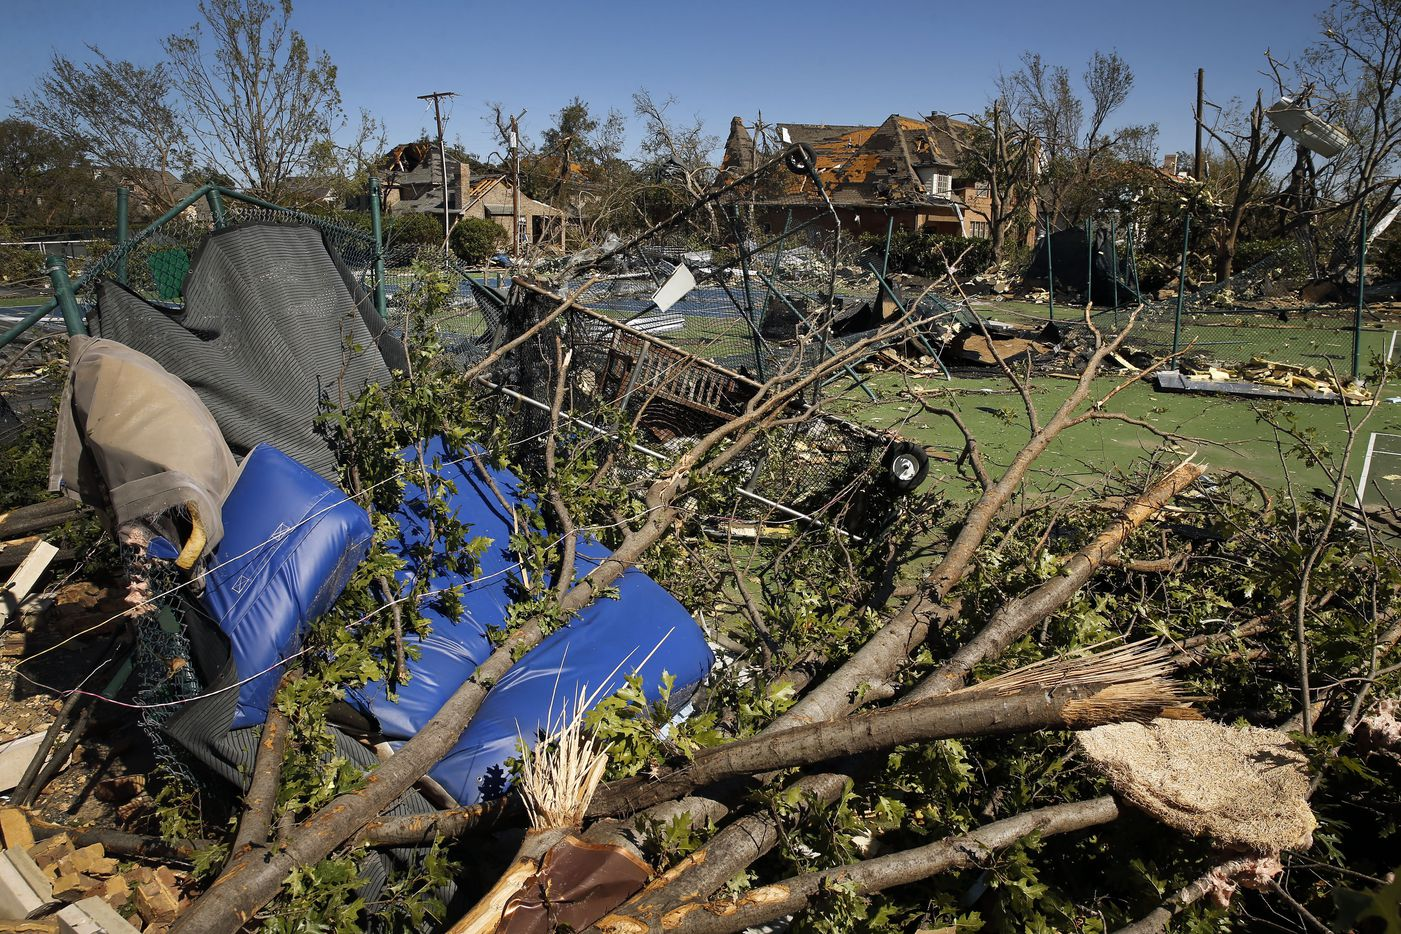 Parts of the St. Mark's School of Texas gymnasium, including the wall a handful of trees, destroyed the tennis courts during the tornado in Dallas, Monday, October 21, 2019. A tornado tore through the entire neighborhood knocking down trees and ripping roofs from homes. (Tom Fox/The Dallas Morning News)